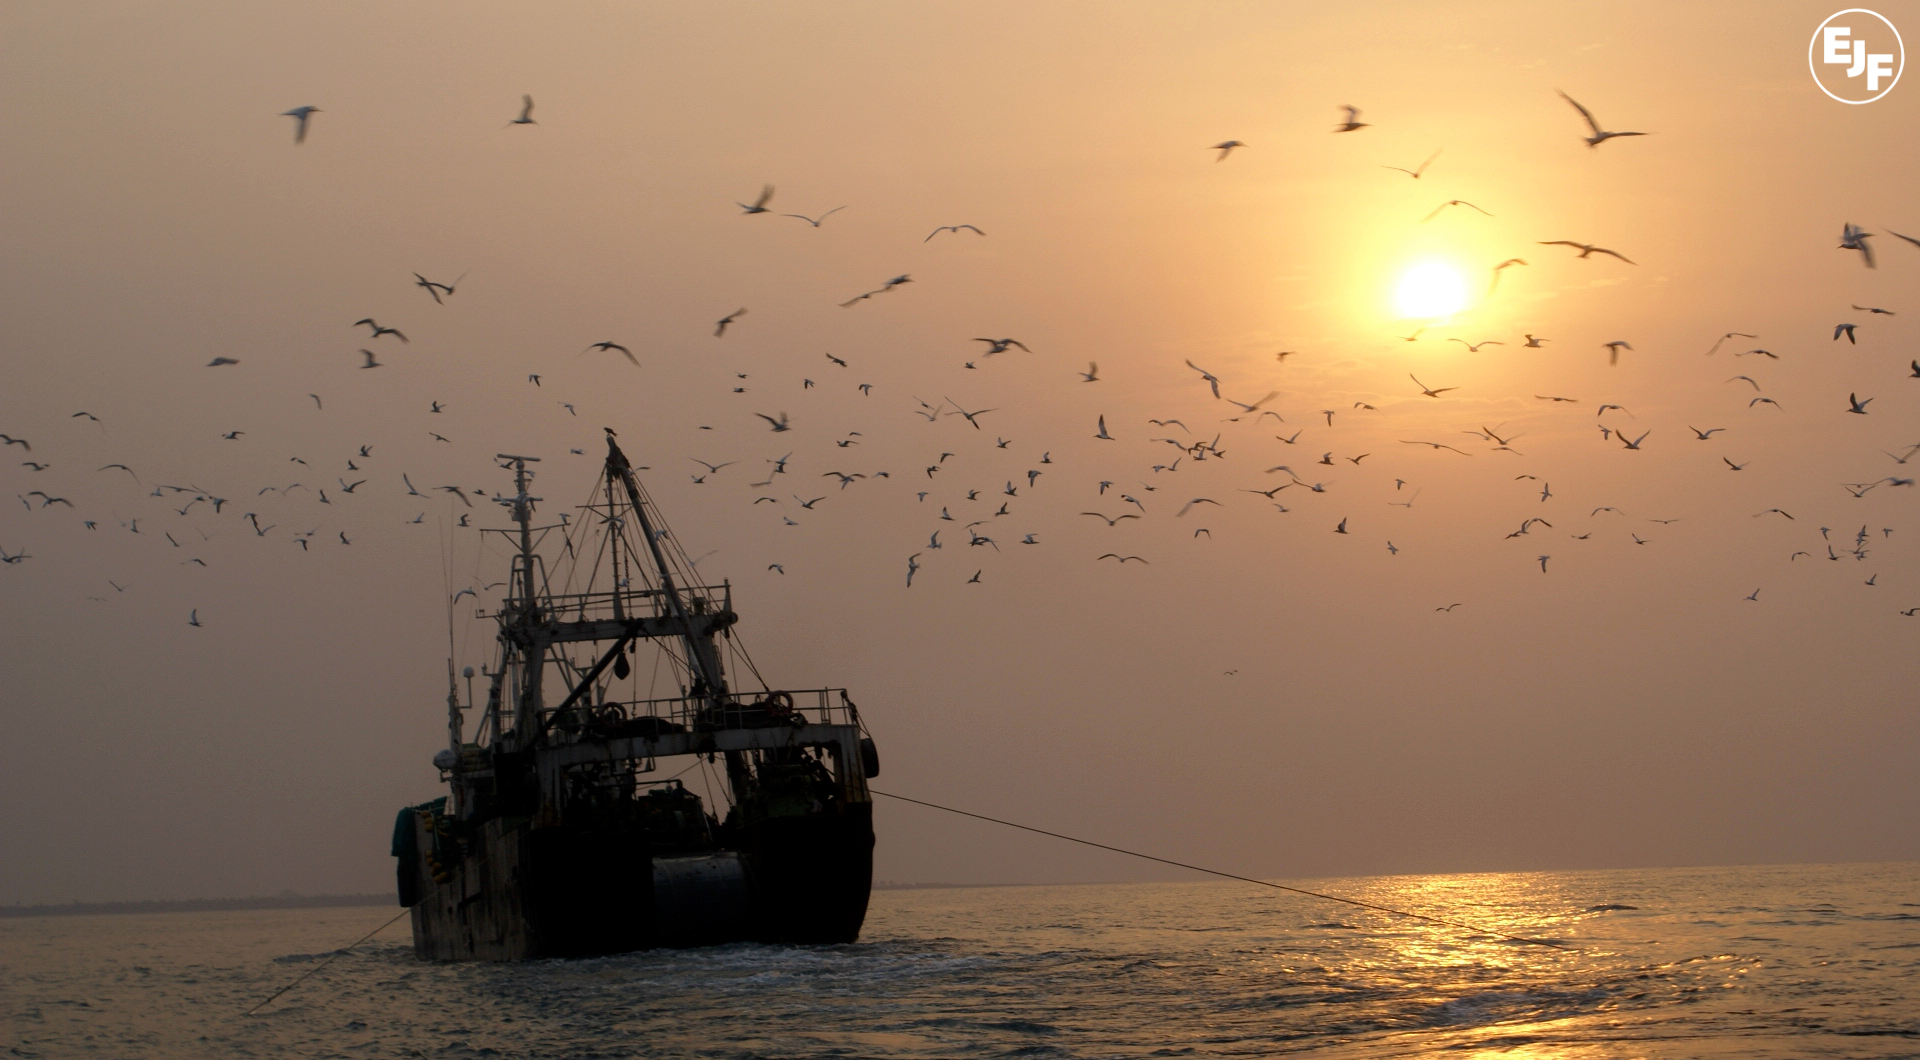 Press Release: Spain announces law to fight pirate fishing